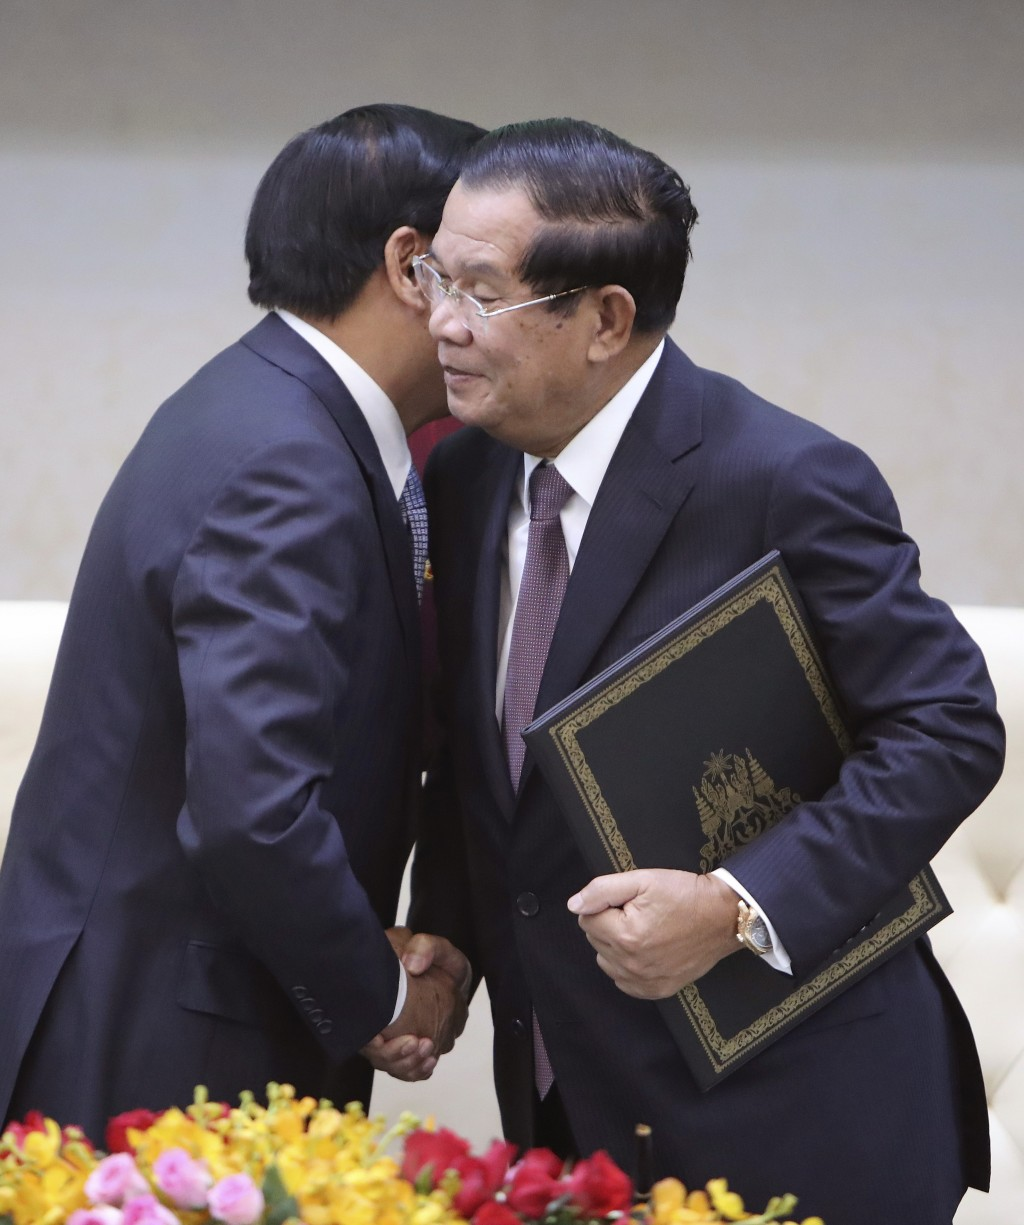 Cambodian Prime Minister Hun Sen, right, hugs his Laos counterpart Thonloun Sisoulith during a signing ceremony, in Phnom Penh, Cambodia, Thursday, Se